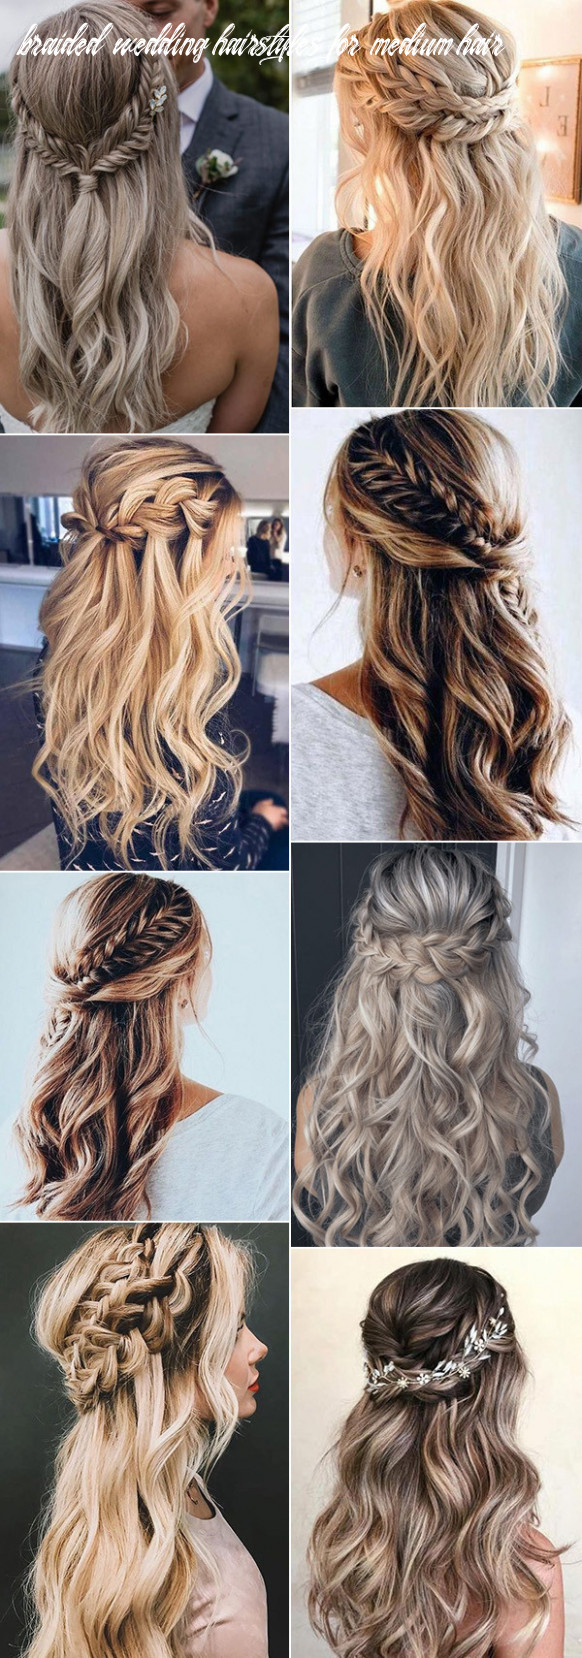 Wedding hairstyles archives oh best day ever braided wedding hairstyles for medium hair